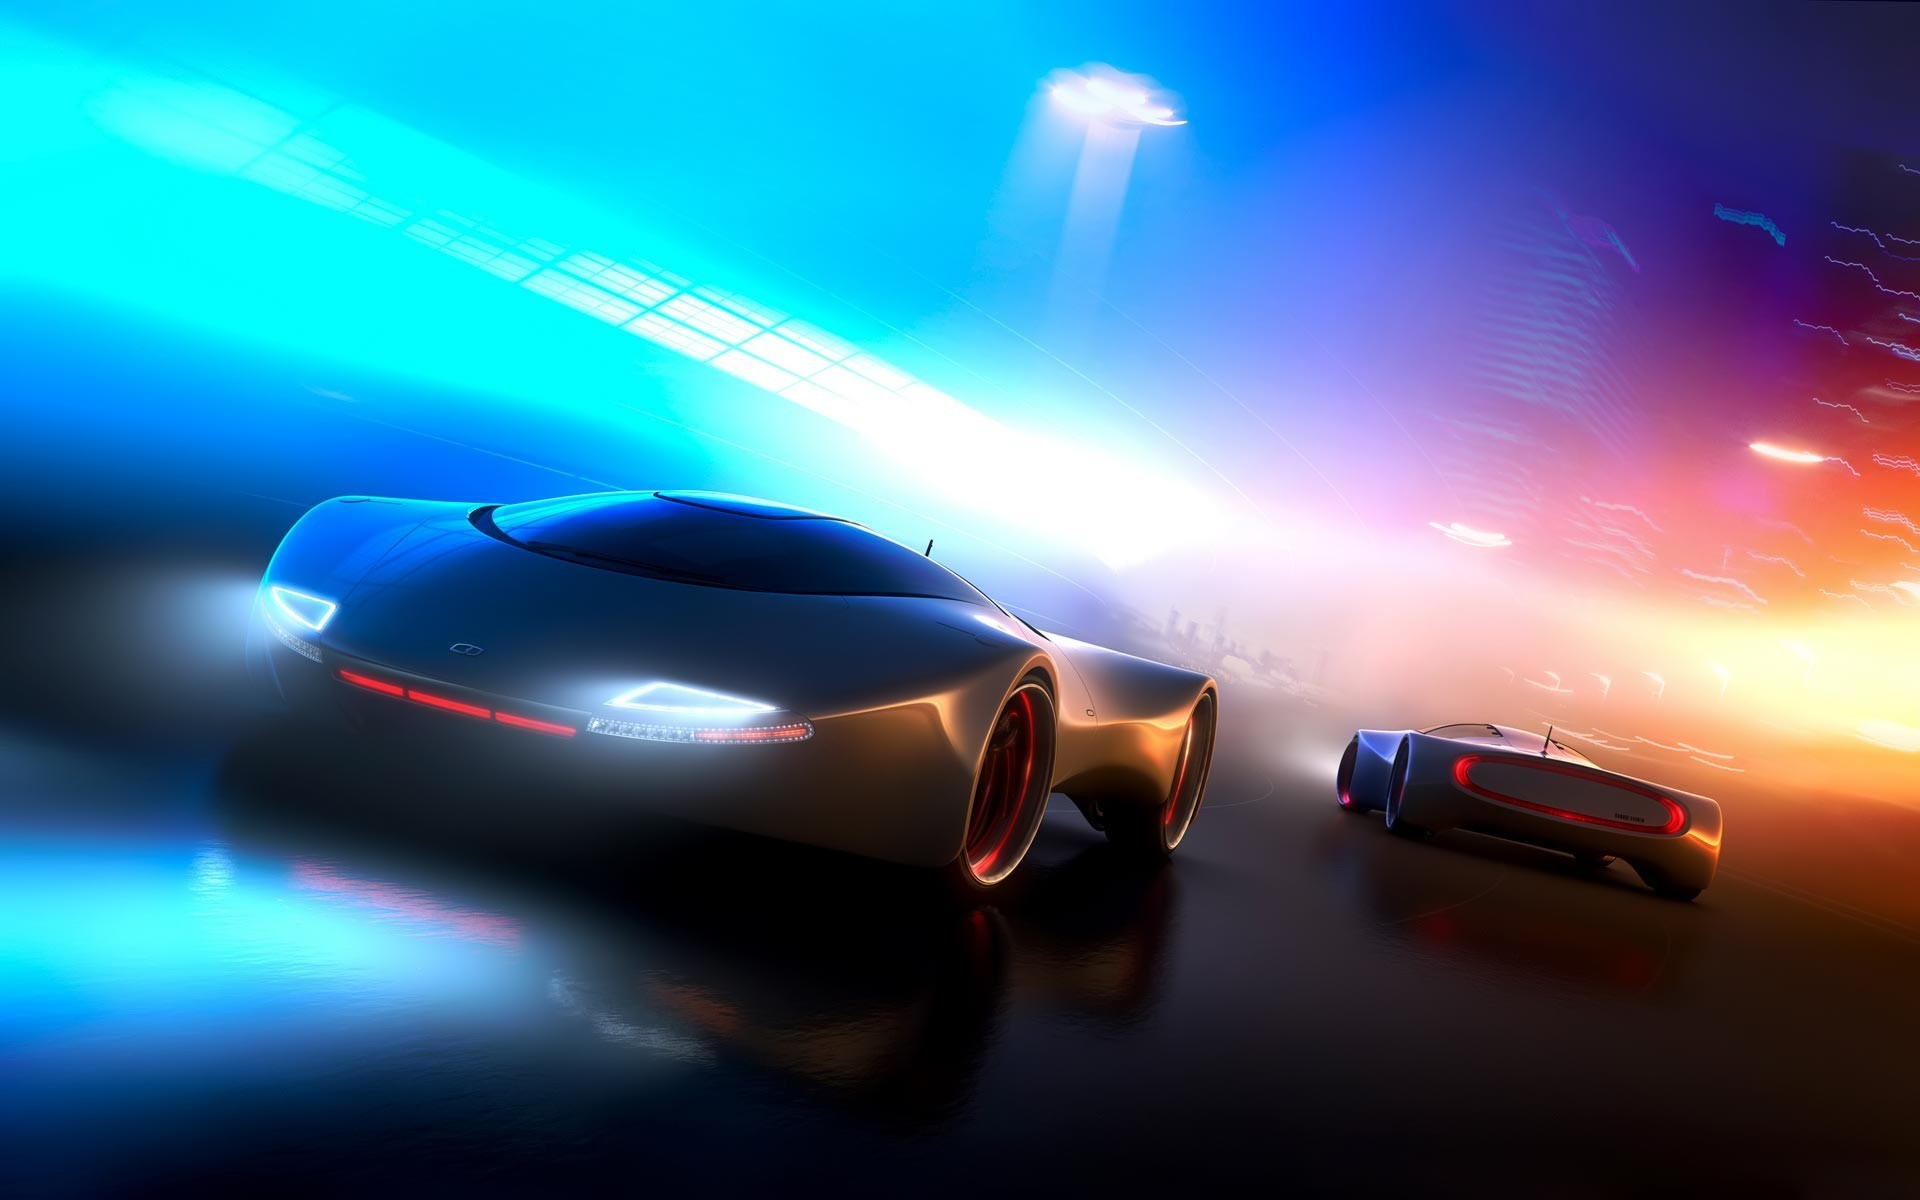 43 Live Car Wallpaper For Pc